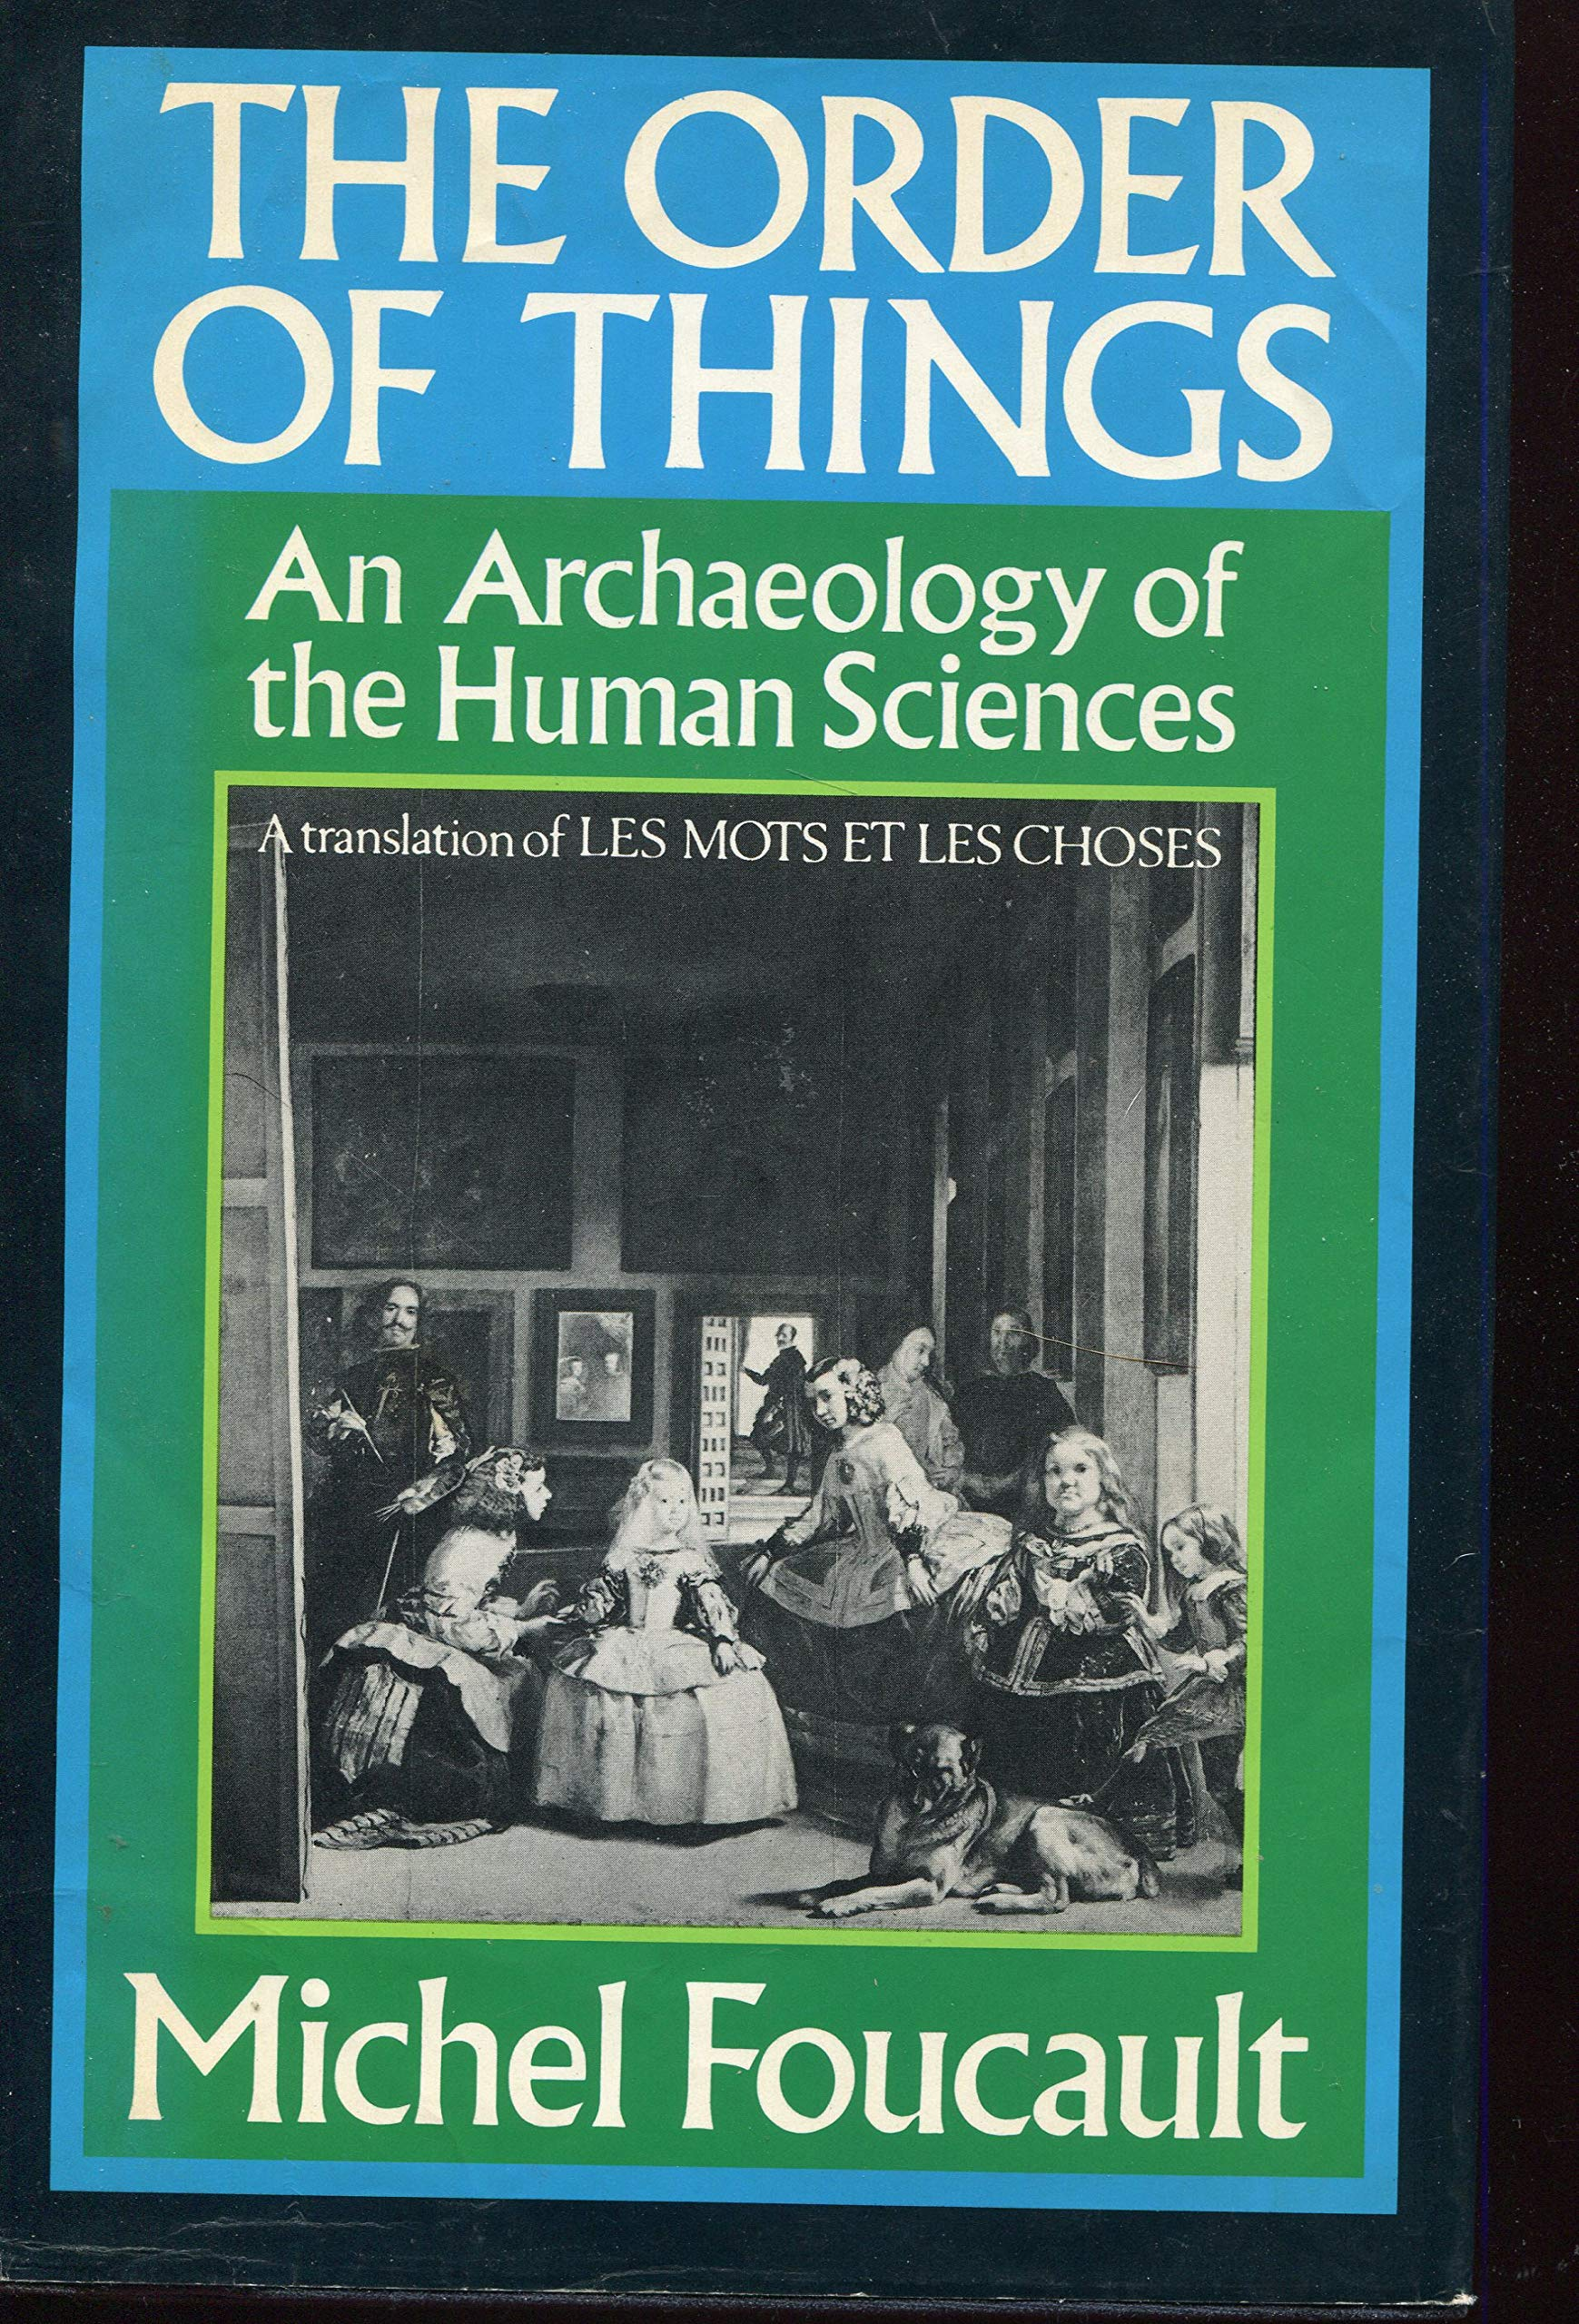 Download The Order Of Things An Archaeology Of The Human Sciences By Michel Foucault